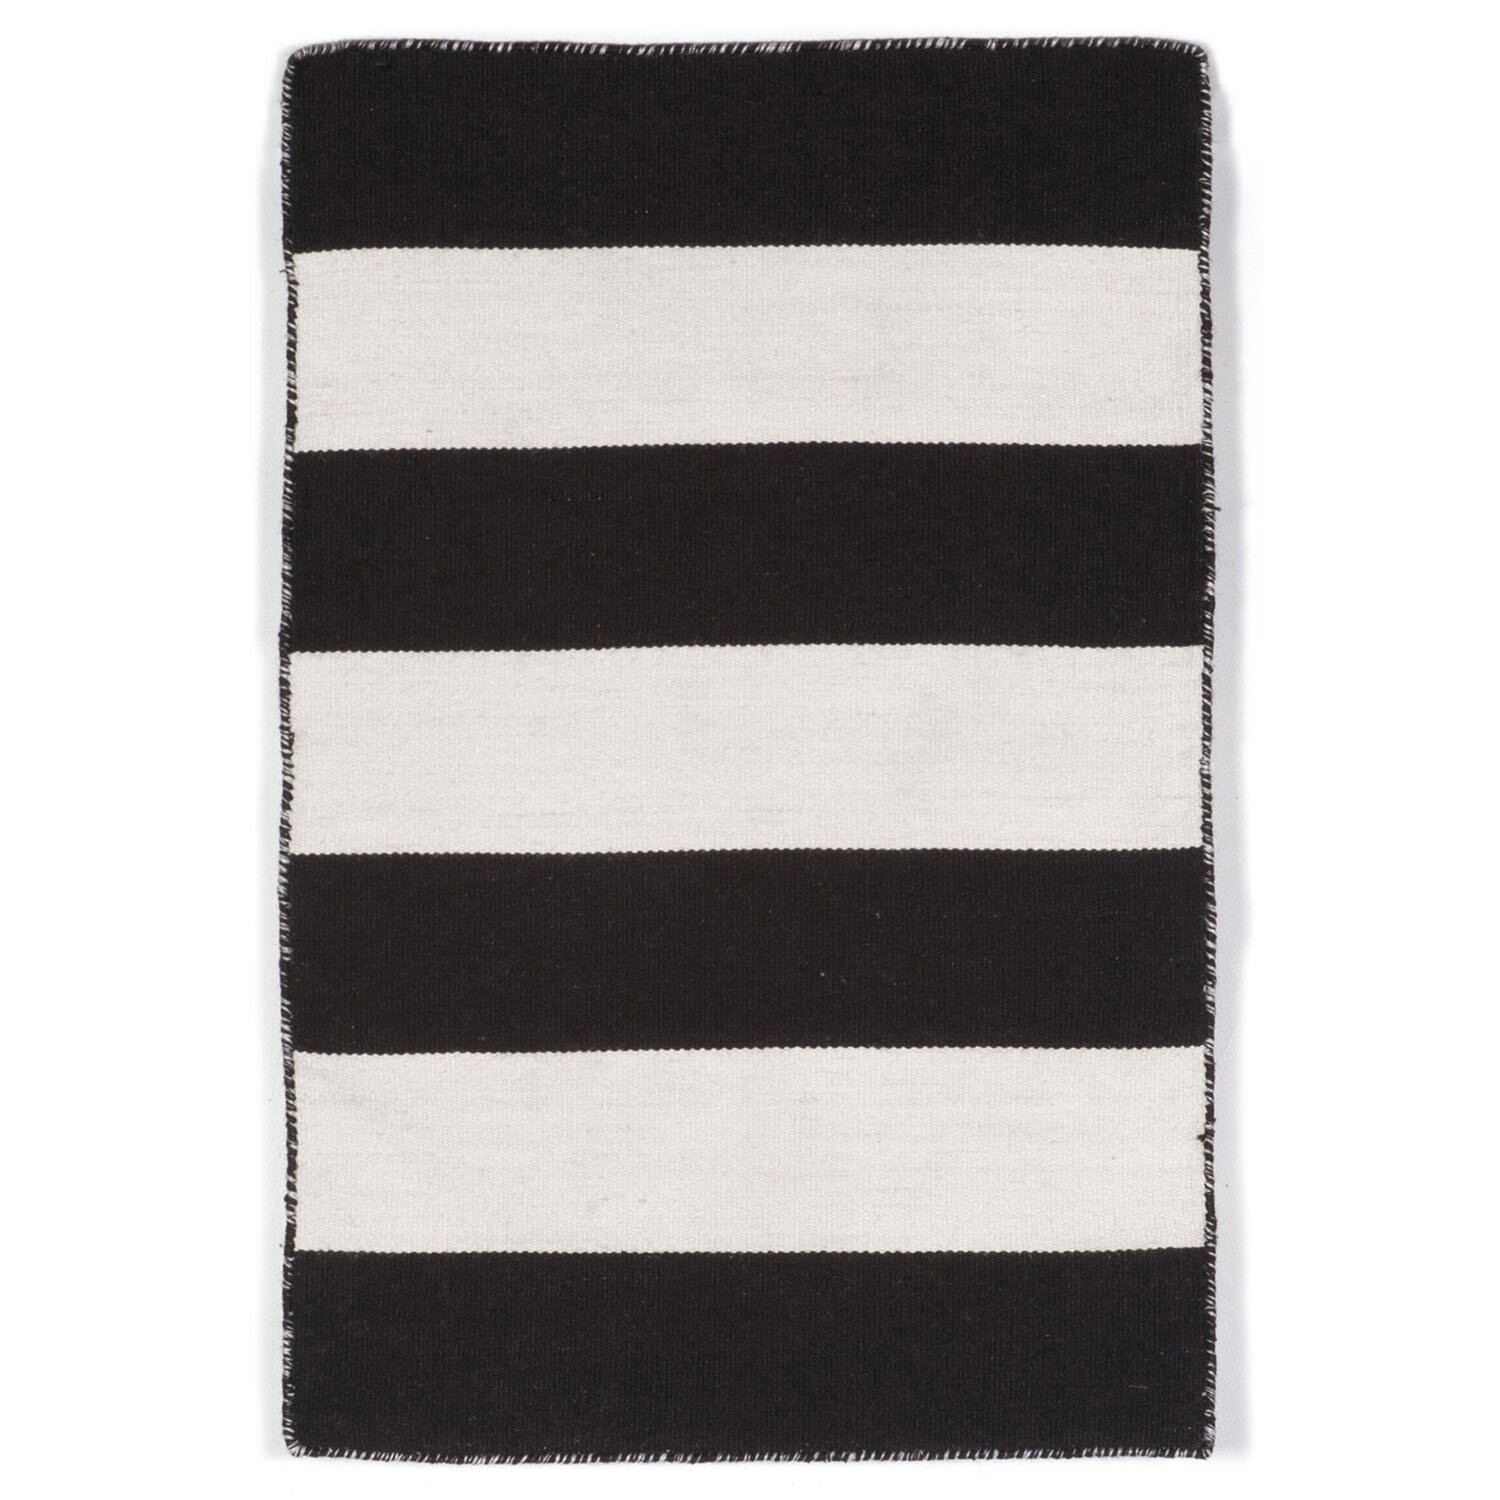 Indoor Outdoor Rugs Black And White: Buske Hand-Woven Black/White Indoor/Outdoor Area Rug